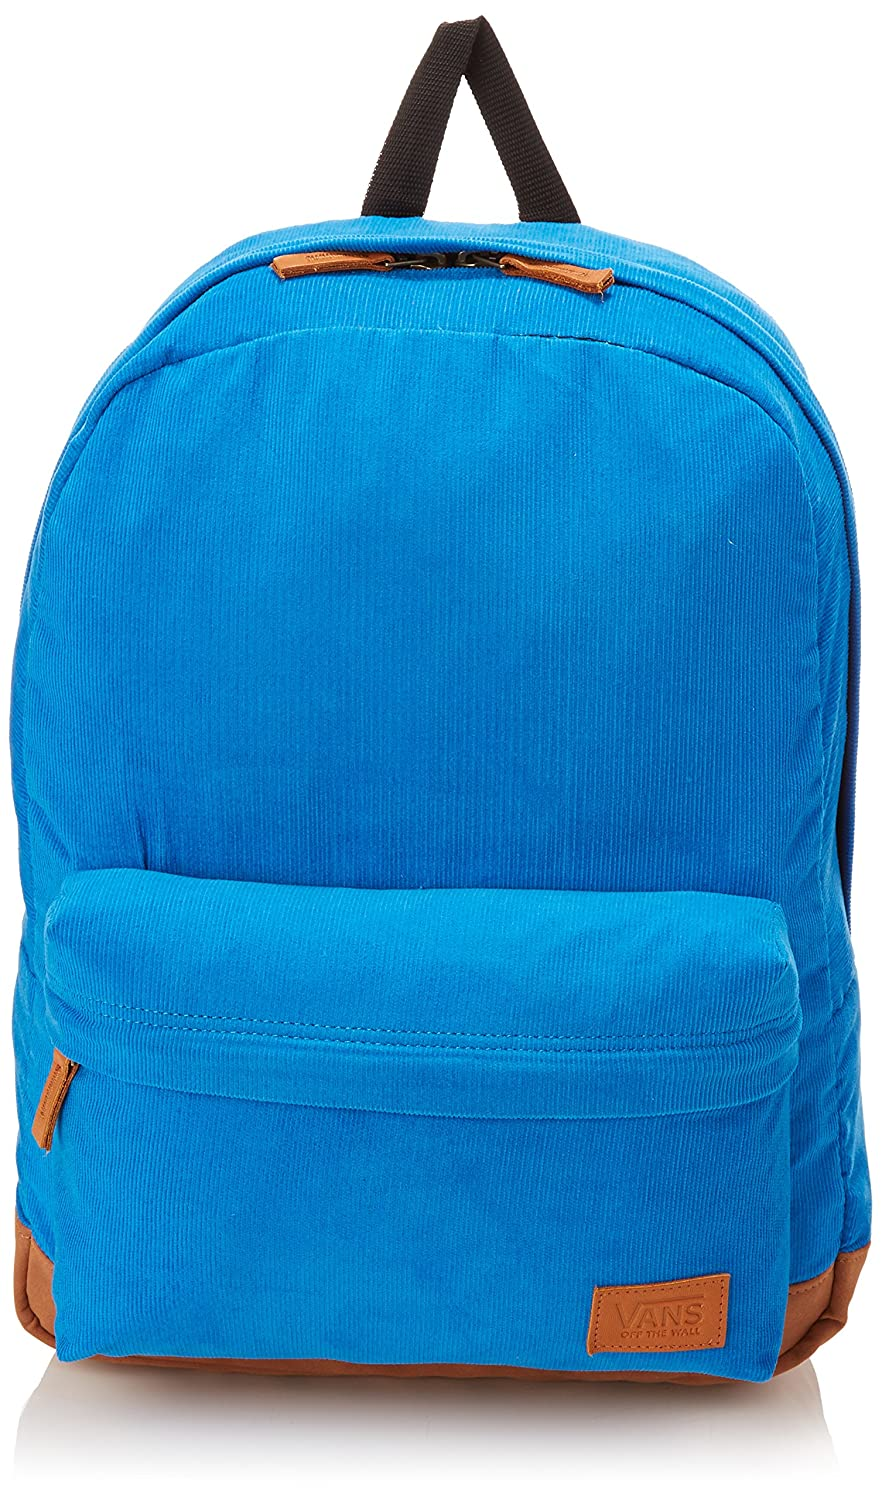 cbfd964561ac2 Vans G Deana Iii Backpack, Women's Bag, Blue (surf Blue), One Size:  Amazon.co.uk: Shoes & Bags